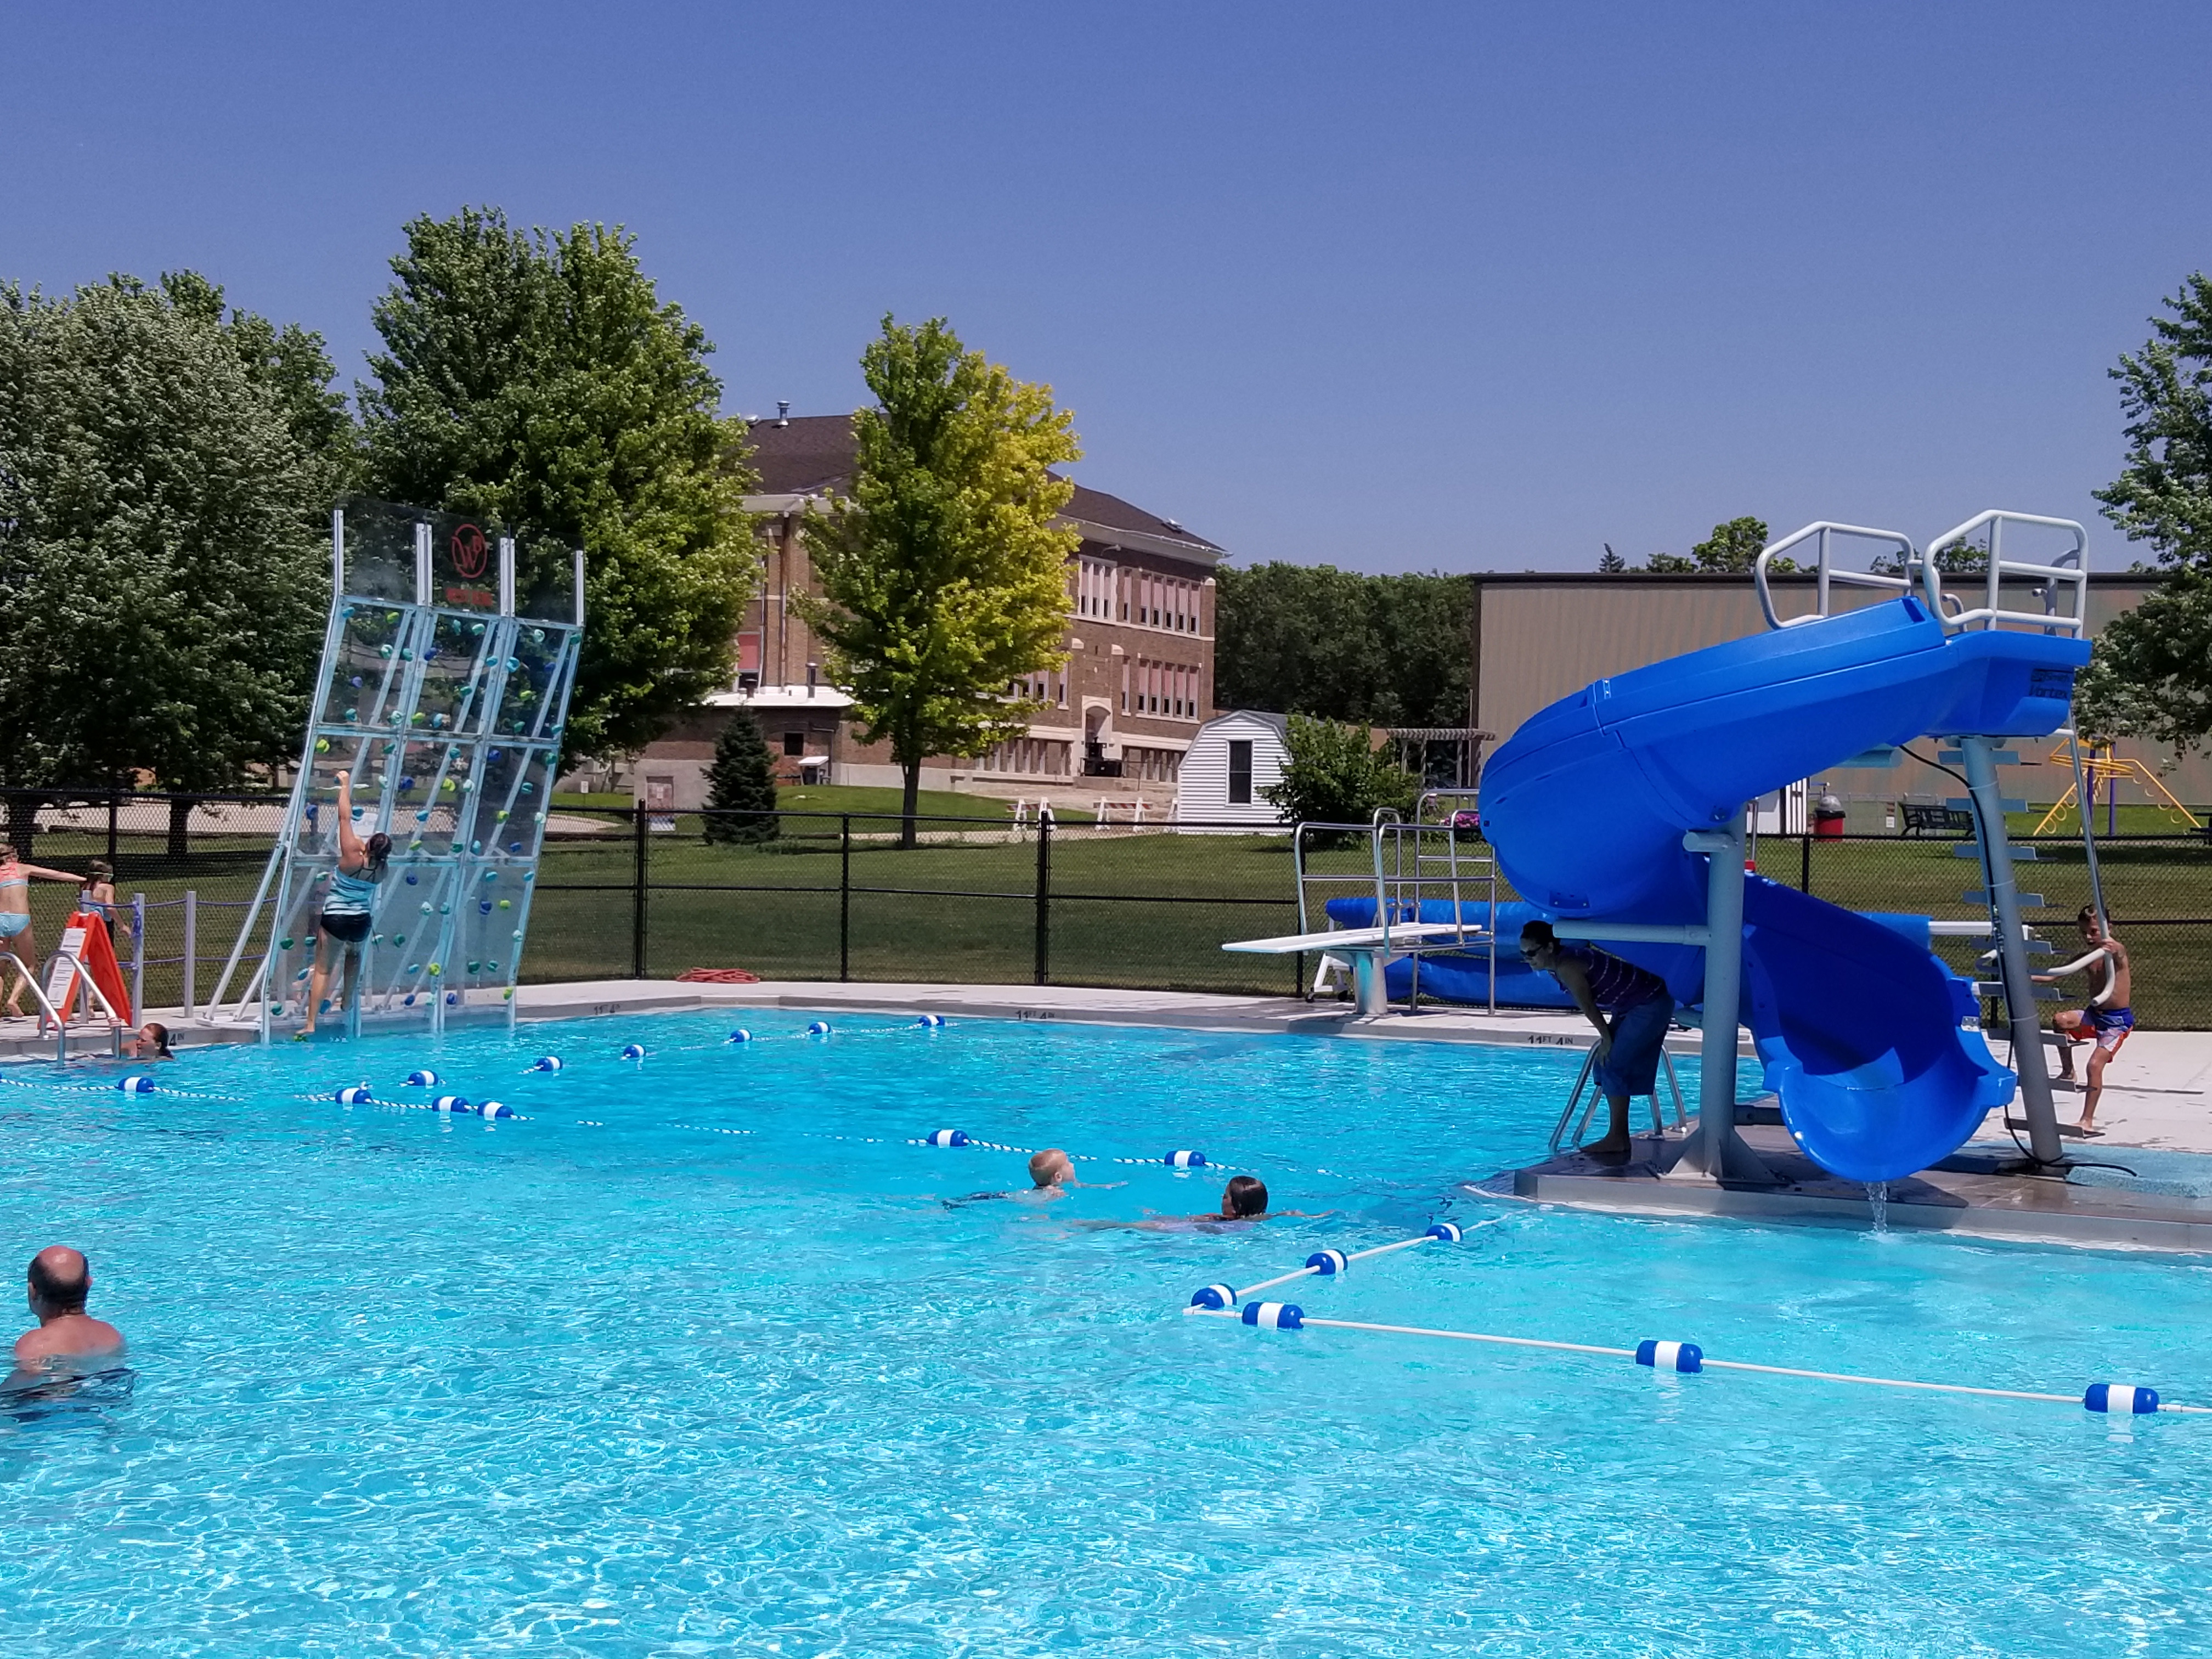 West Bend Pool with climbing wall and water slide